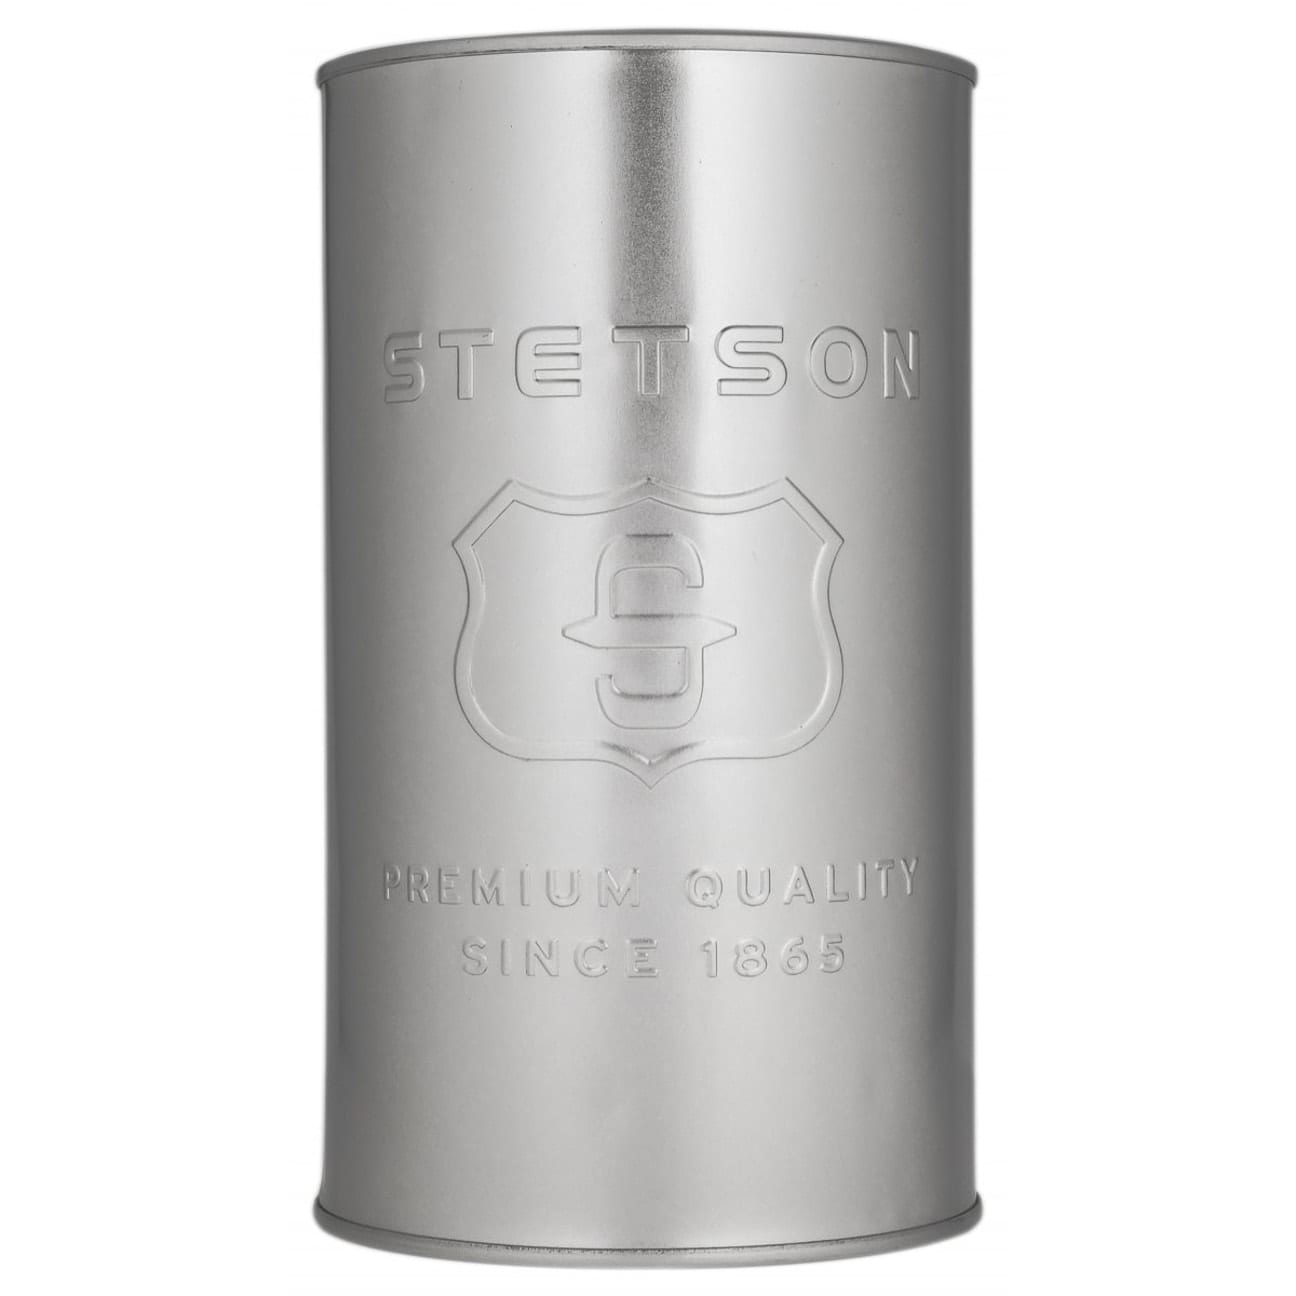 Branded Tin Can by Stetson